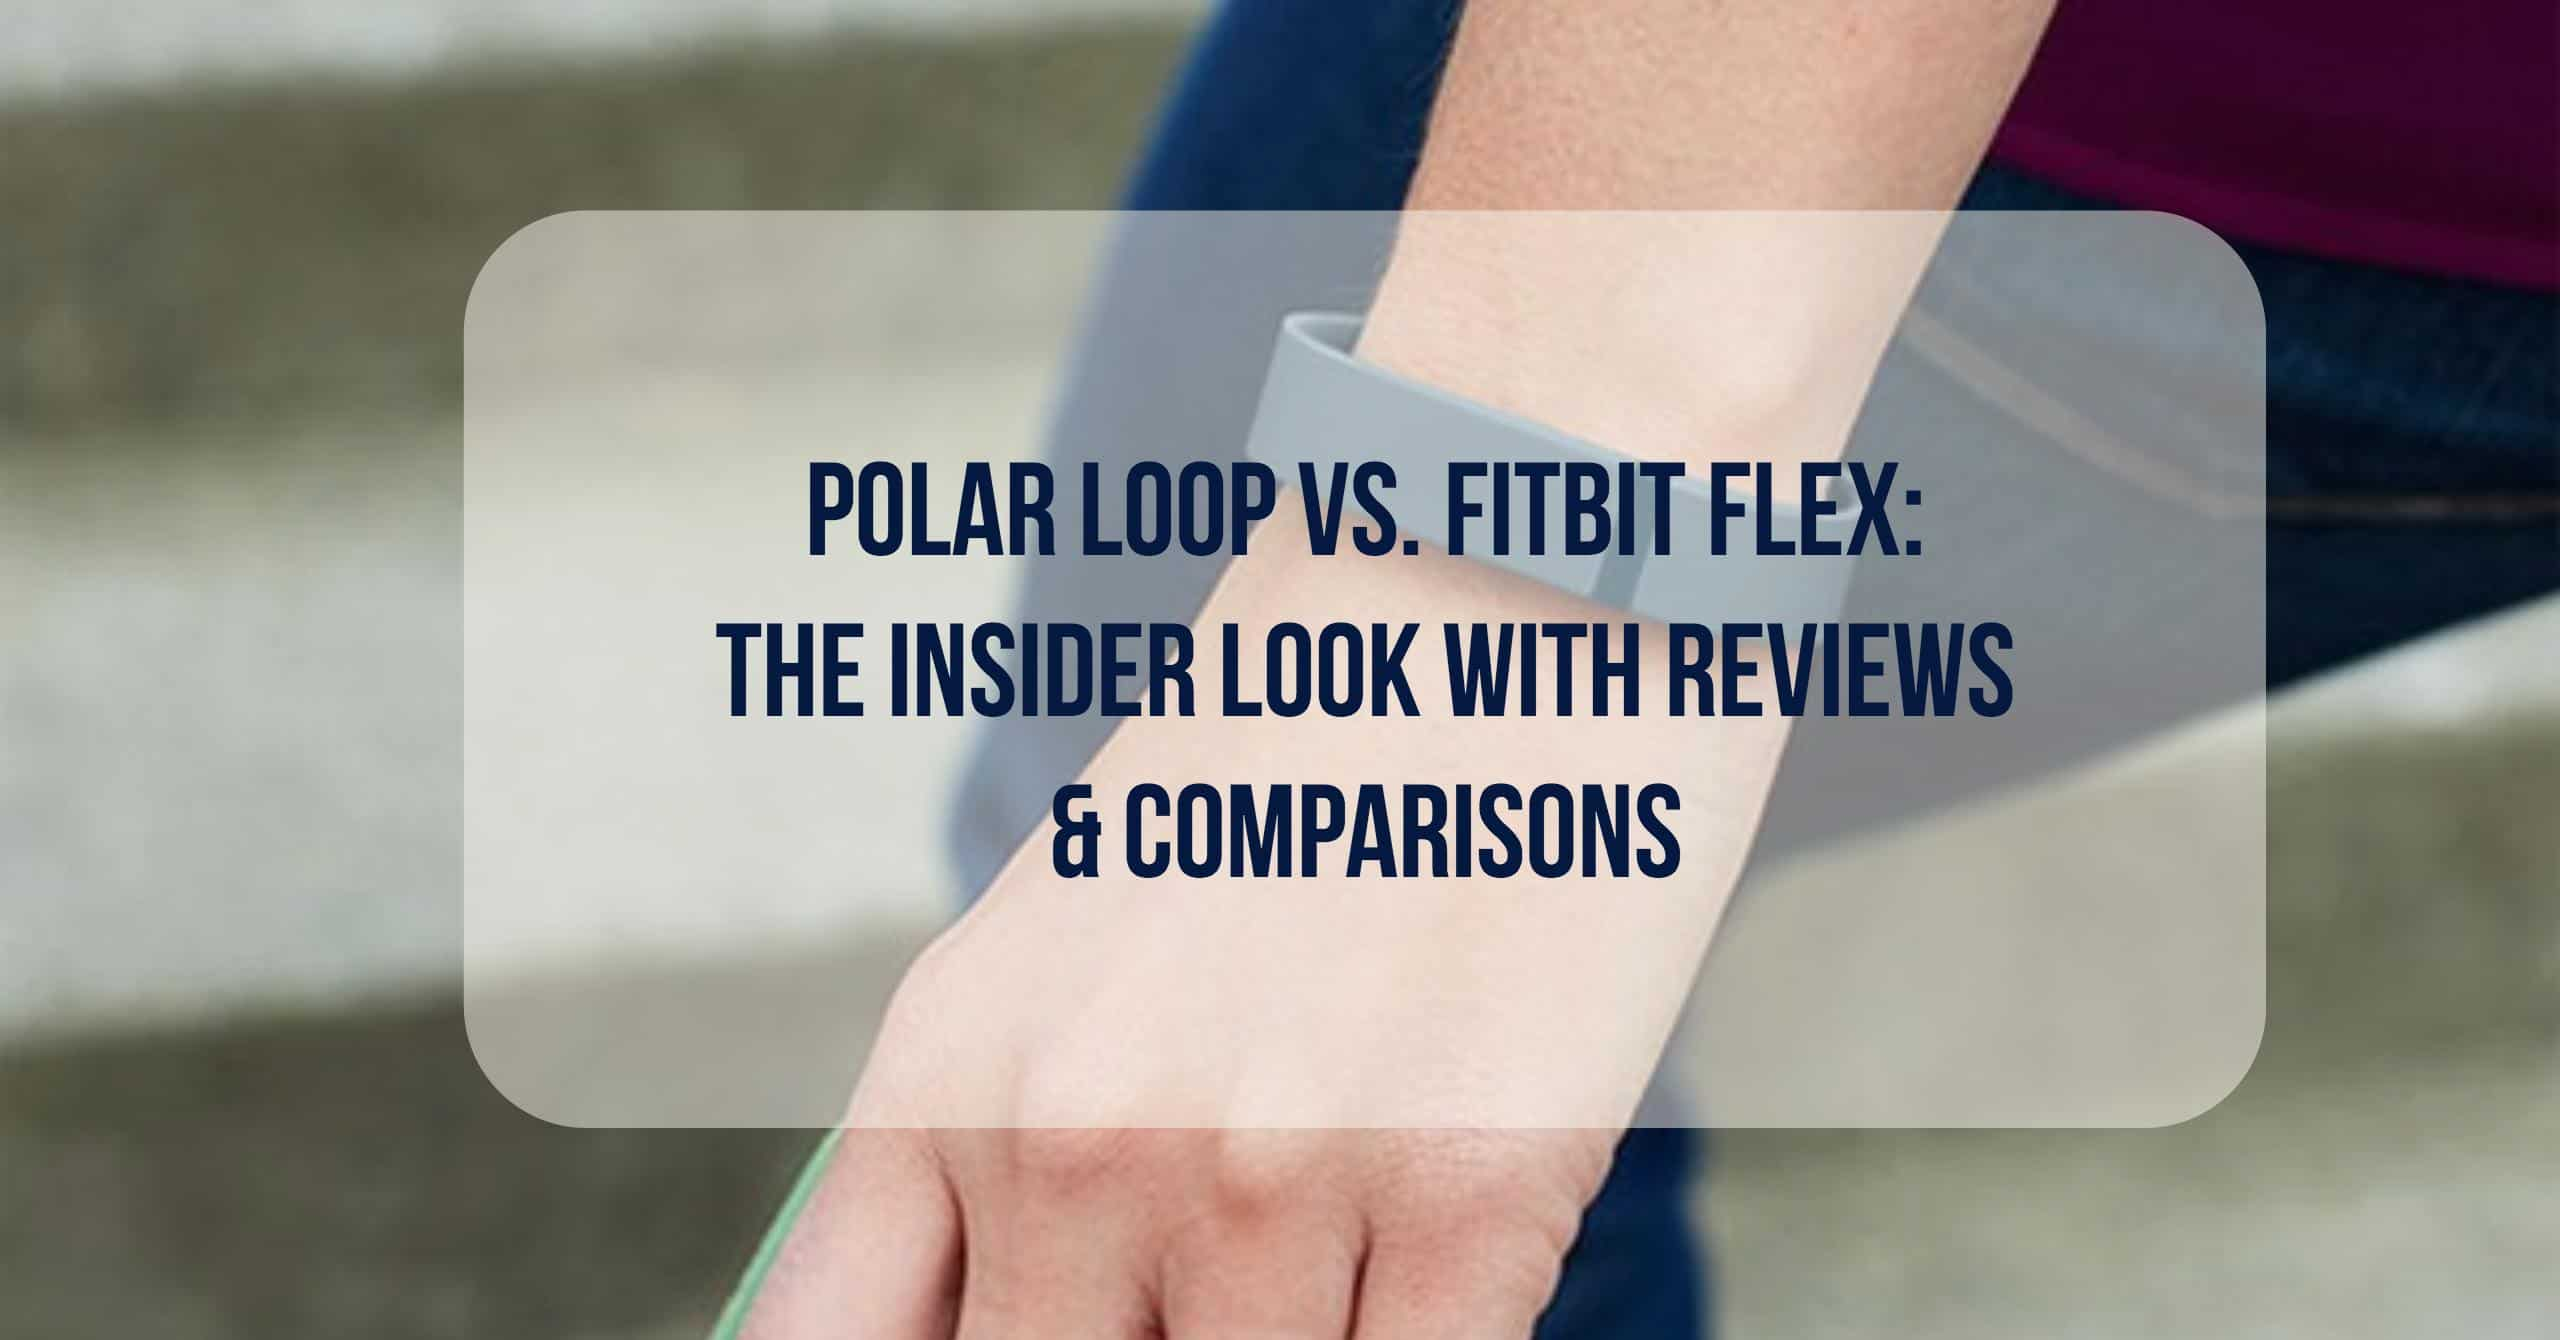 Polar Loop Vs Fitbit Flex: The Insider Look with Reviews & Comparisons. Both are top-rated, and also the creme' de la creme' of the fitness world. They are both from two fitness tracking companies that have recently been in a head-to-head battle of supremacy and technology dominance.